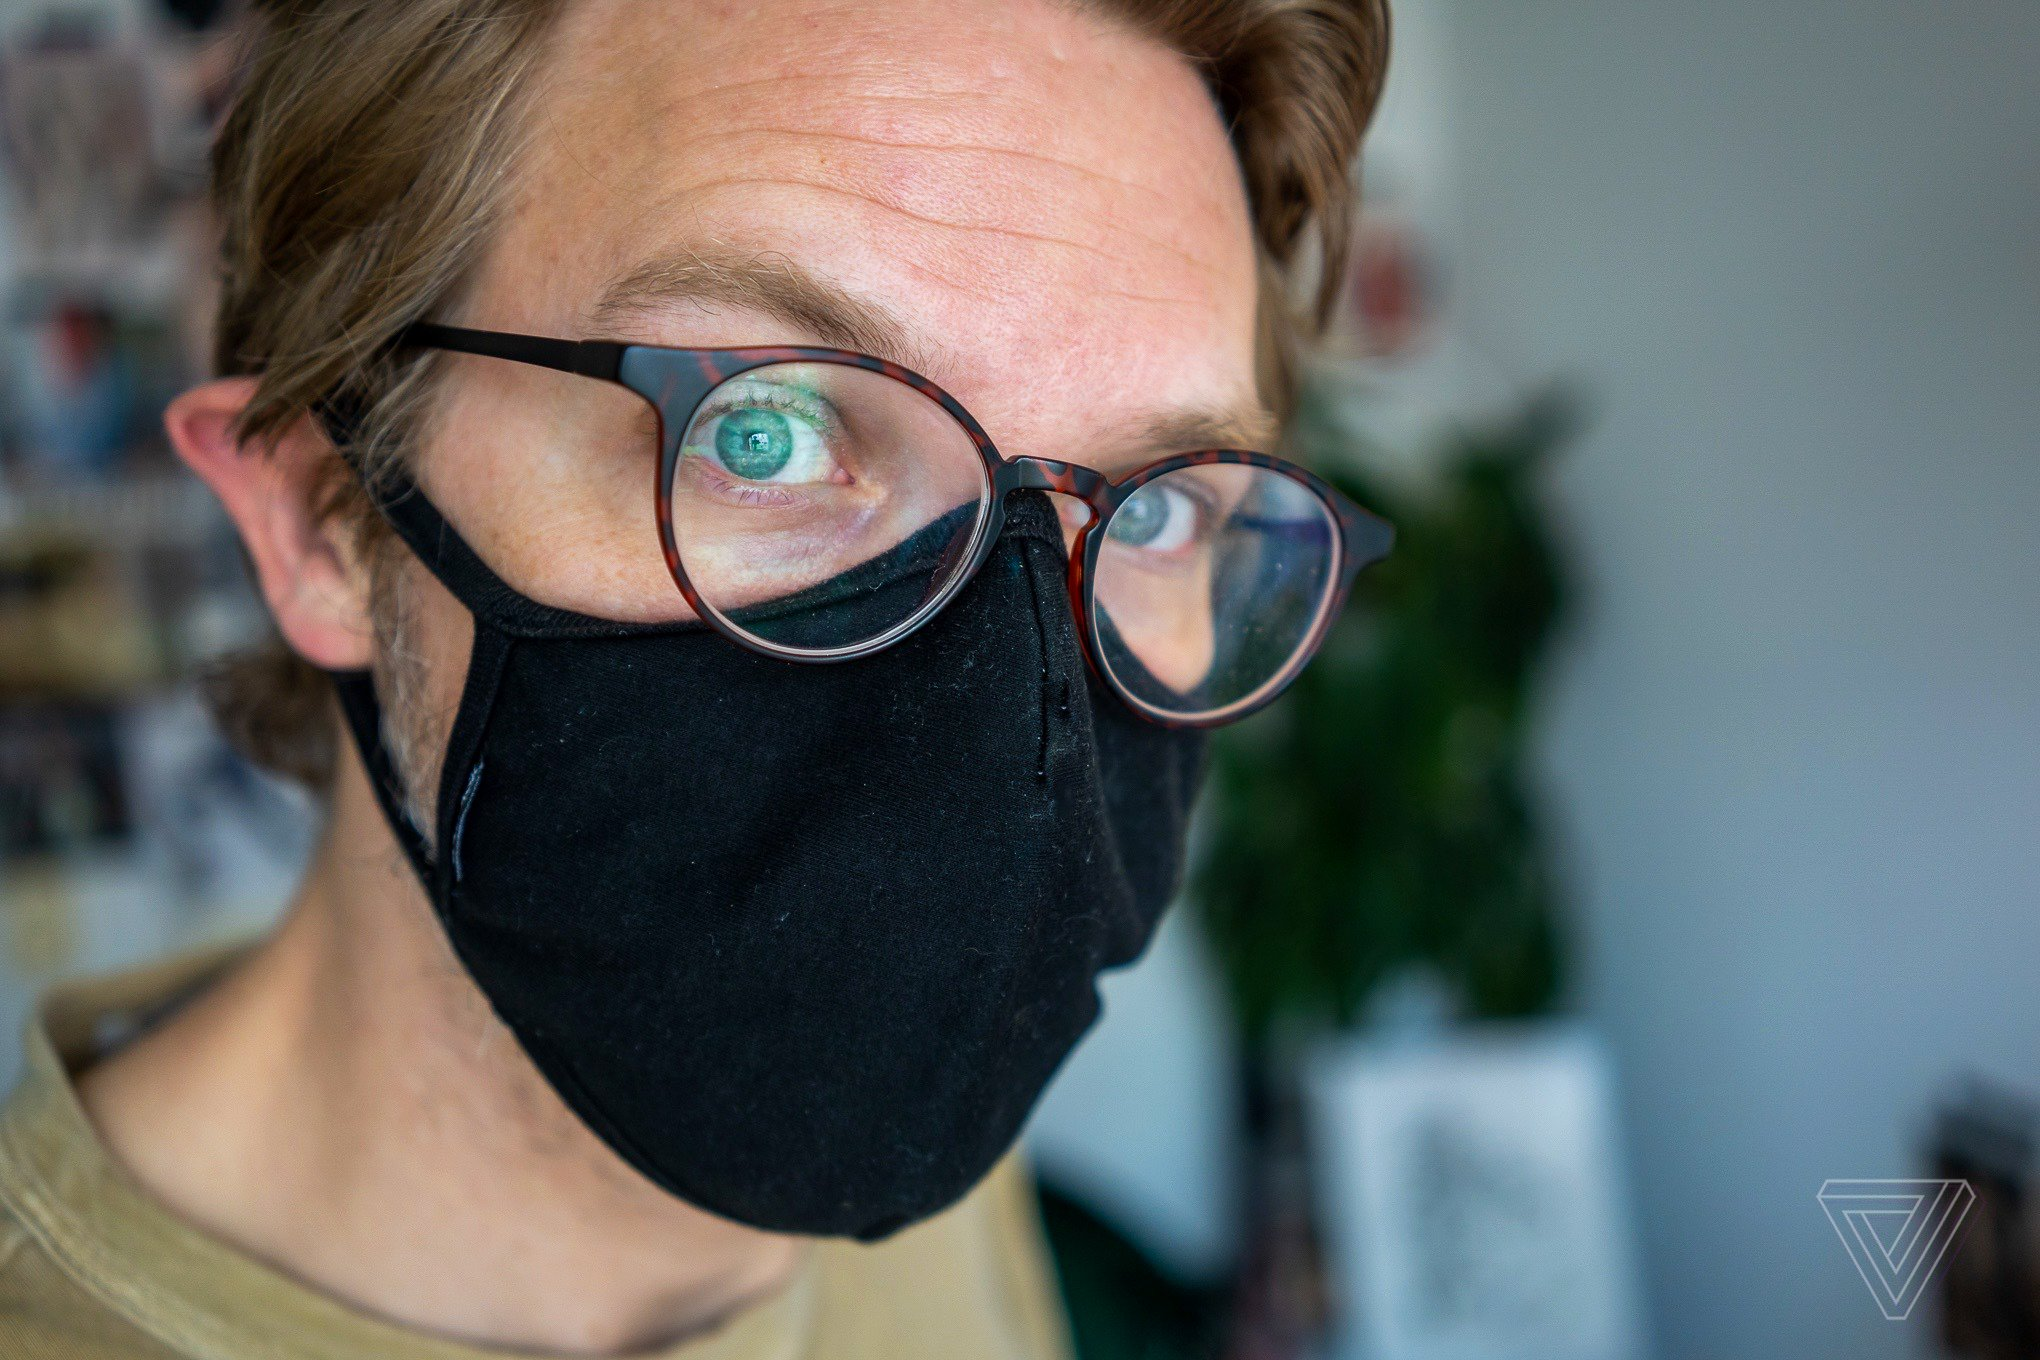 Putting your glasses on over your mask can prevent fogging.